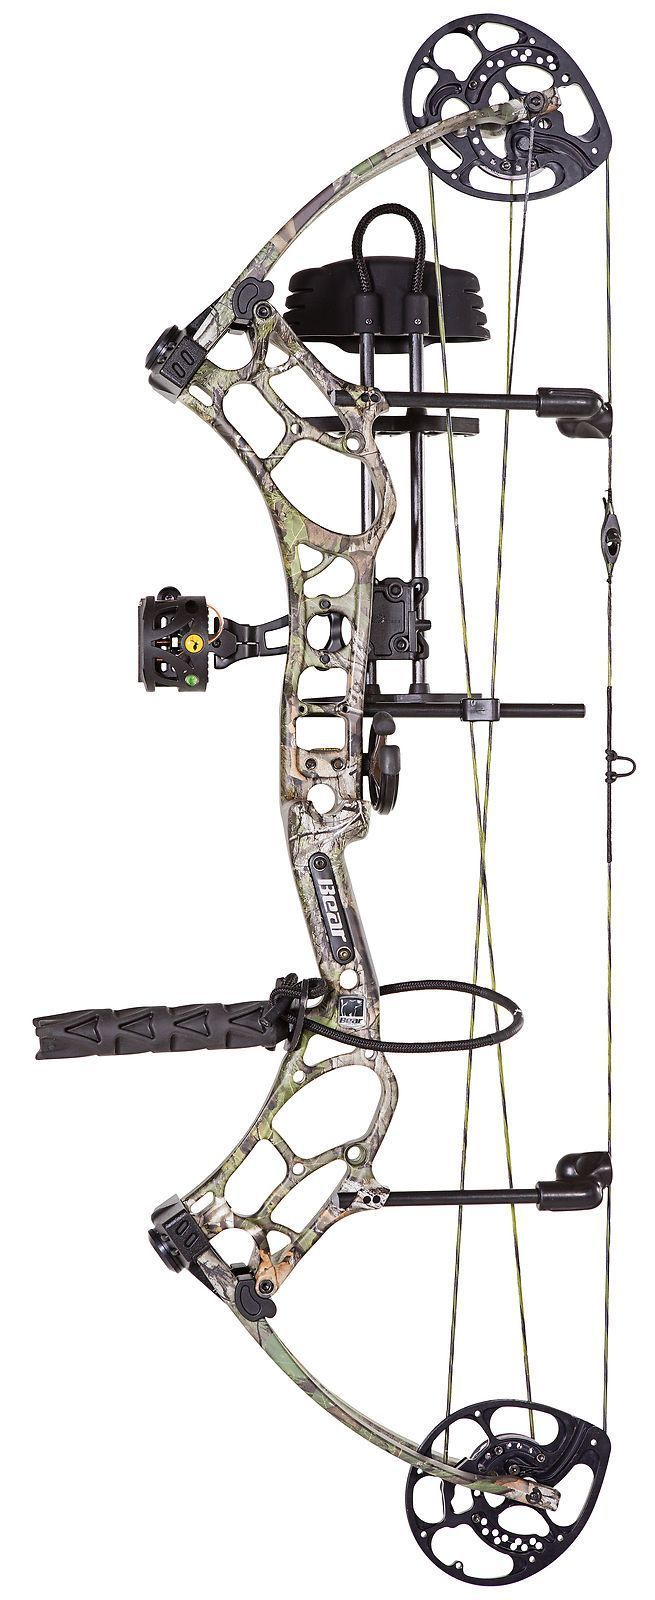 Bear Archery Threat Compound Bow Package 330 Fps 50 60 Lb Draw